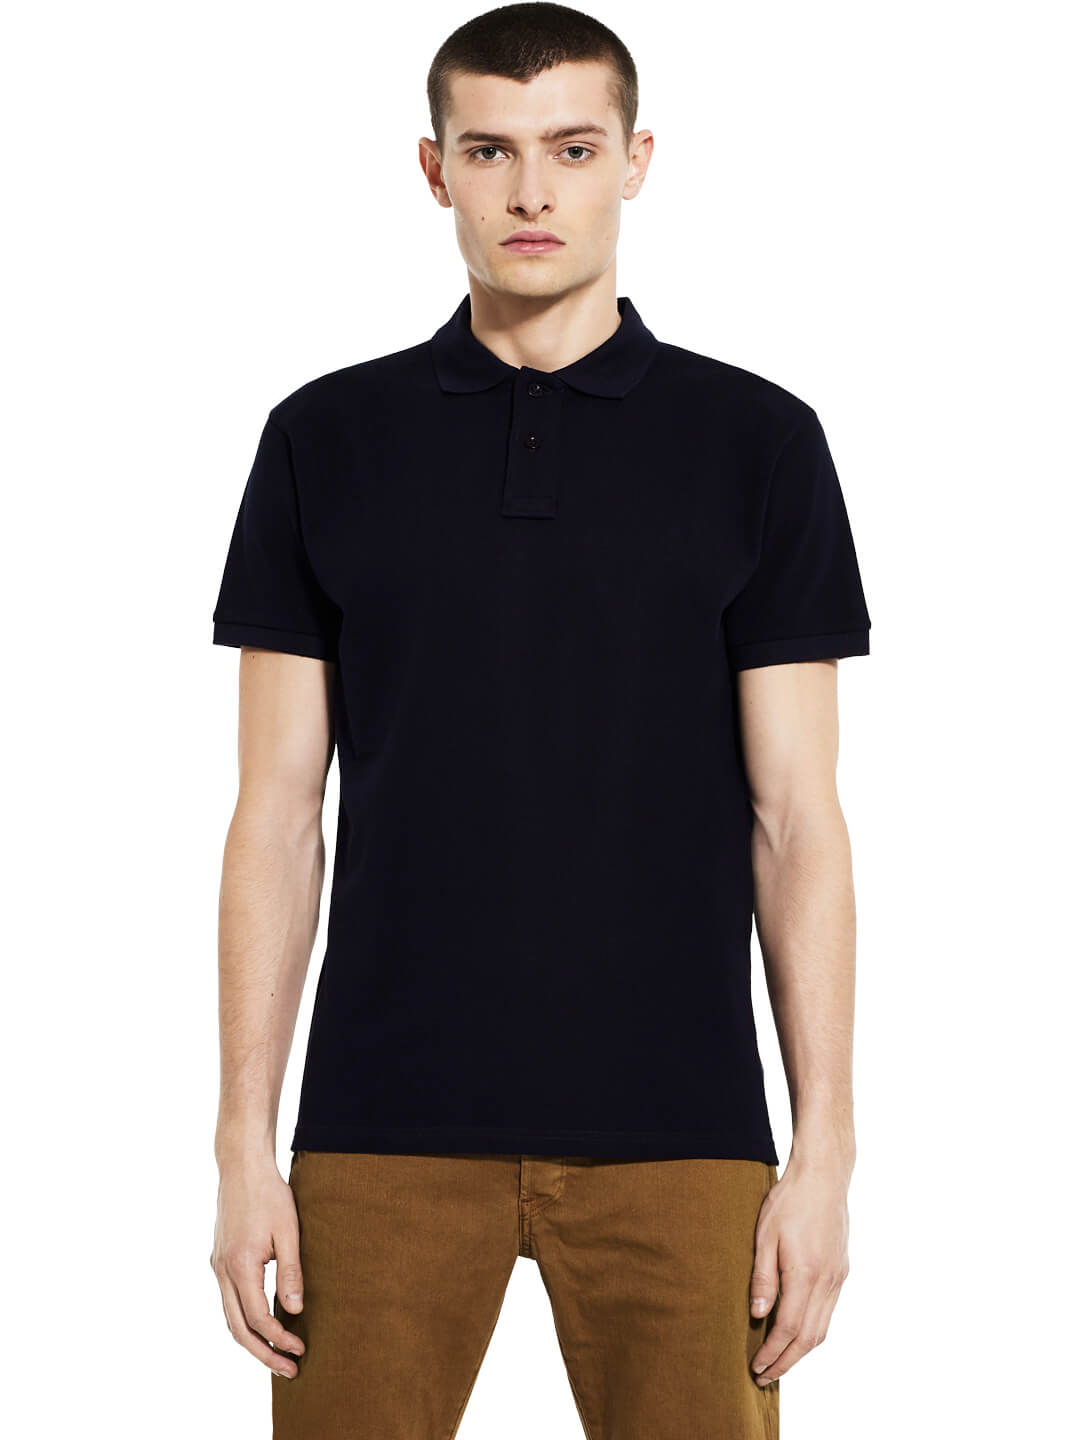 Organic Cotton Polo Shirt: Earth Positive